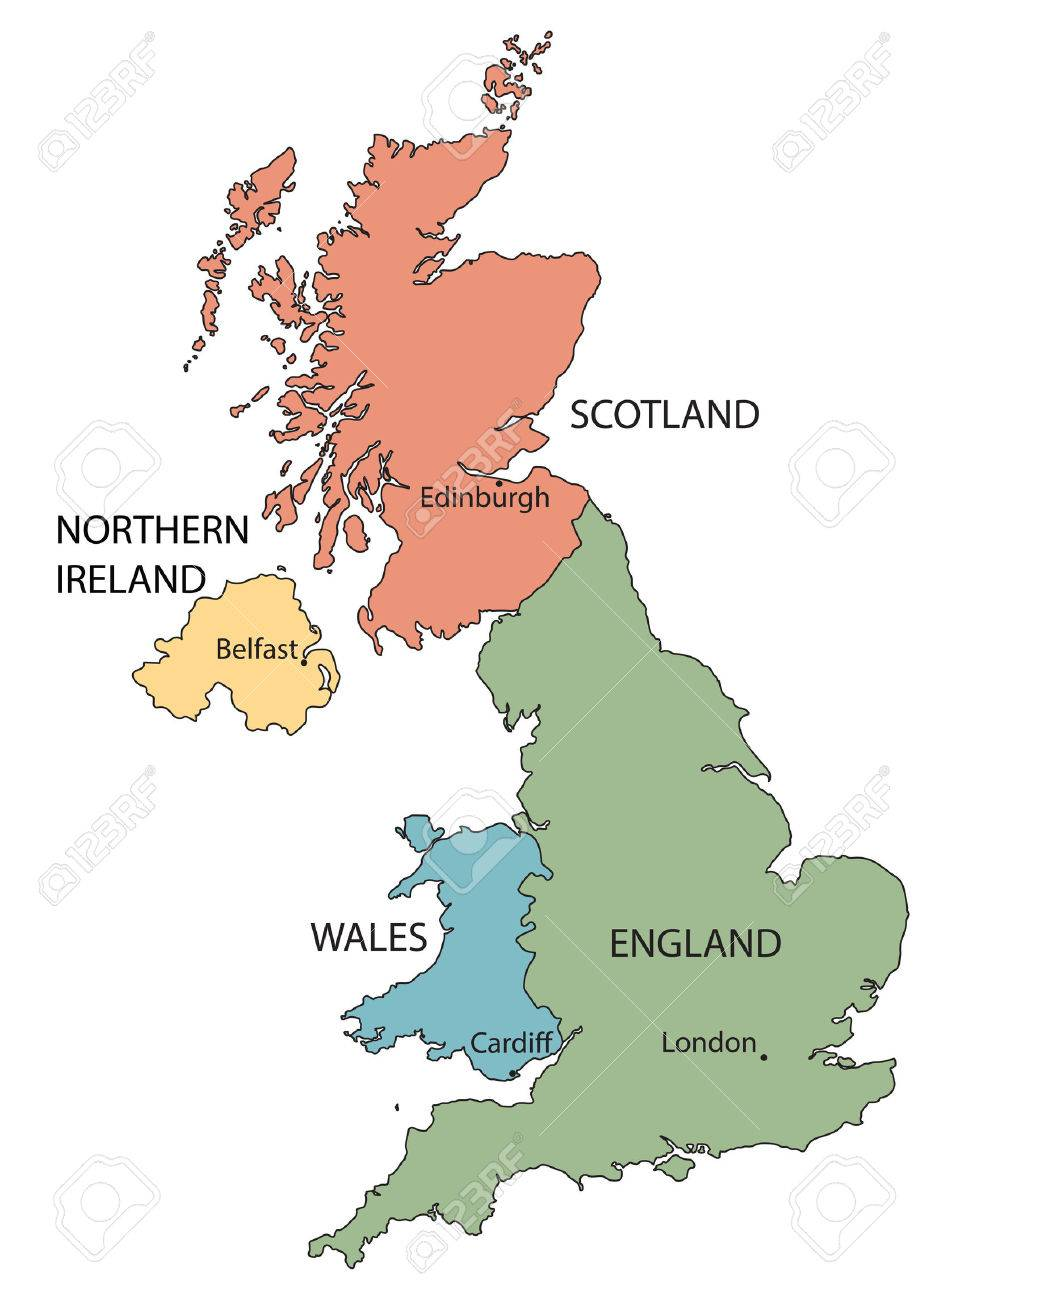 Map Of Uk Countries And Capital Cities.Colorful Map Of Countries Of The United Kingdom With Indication